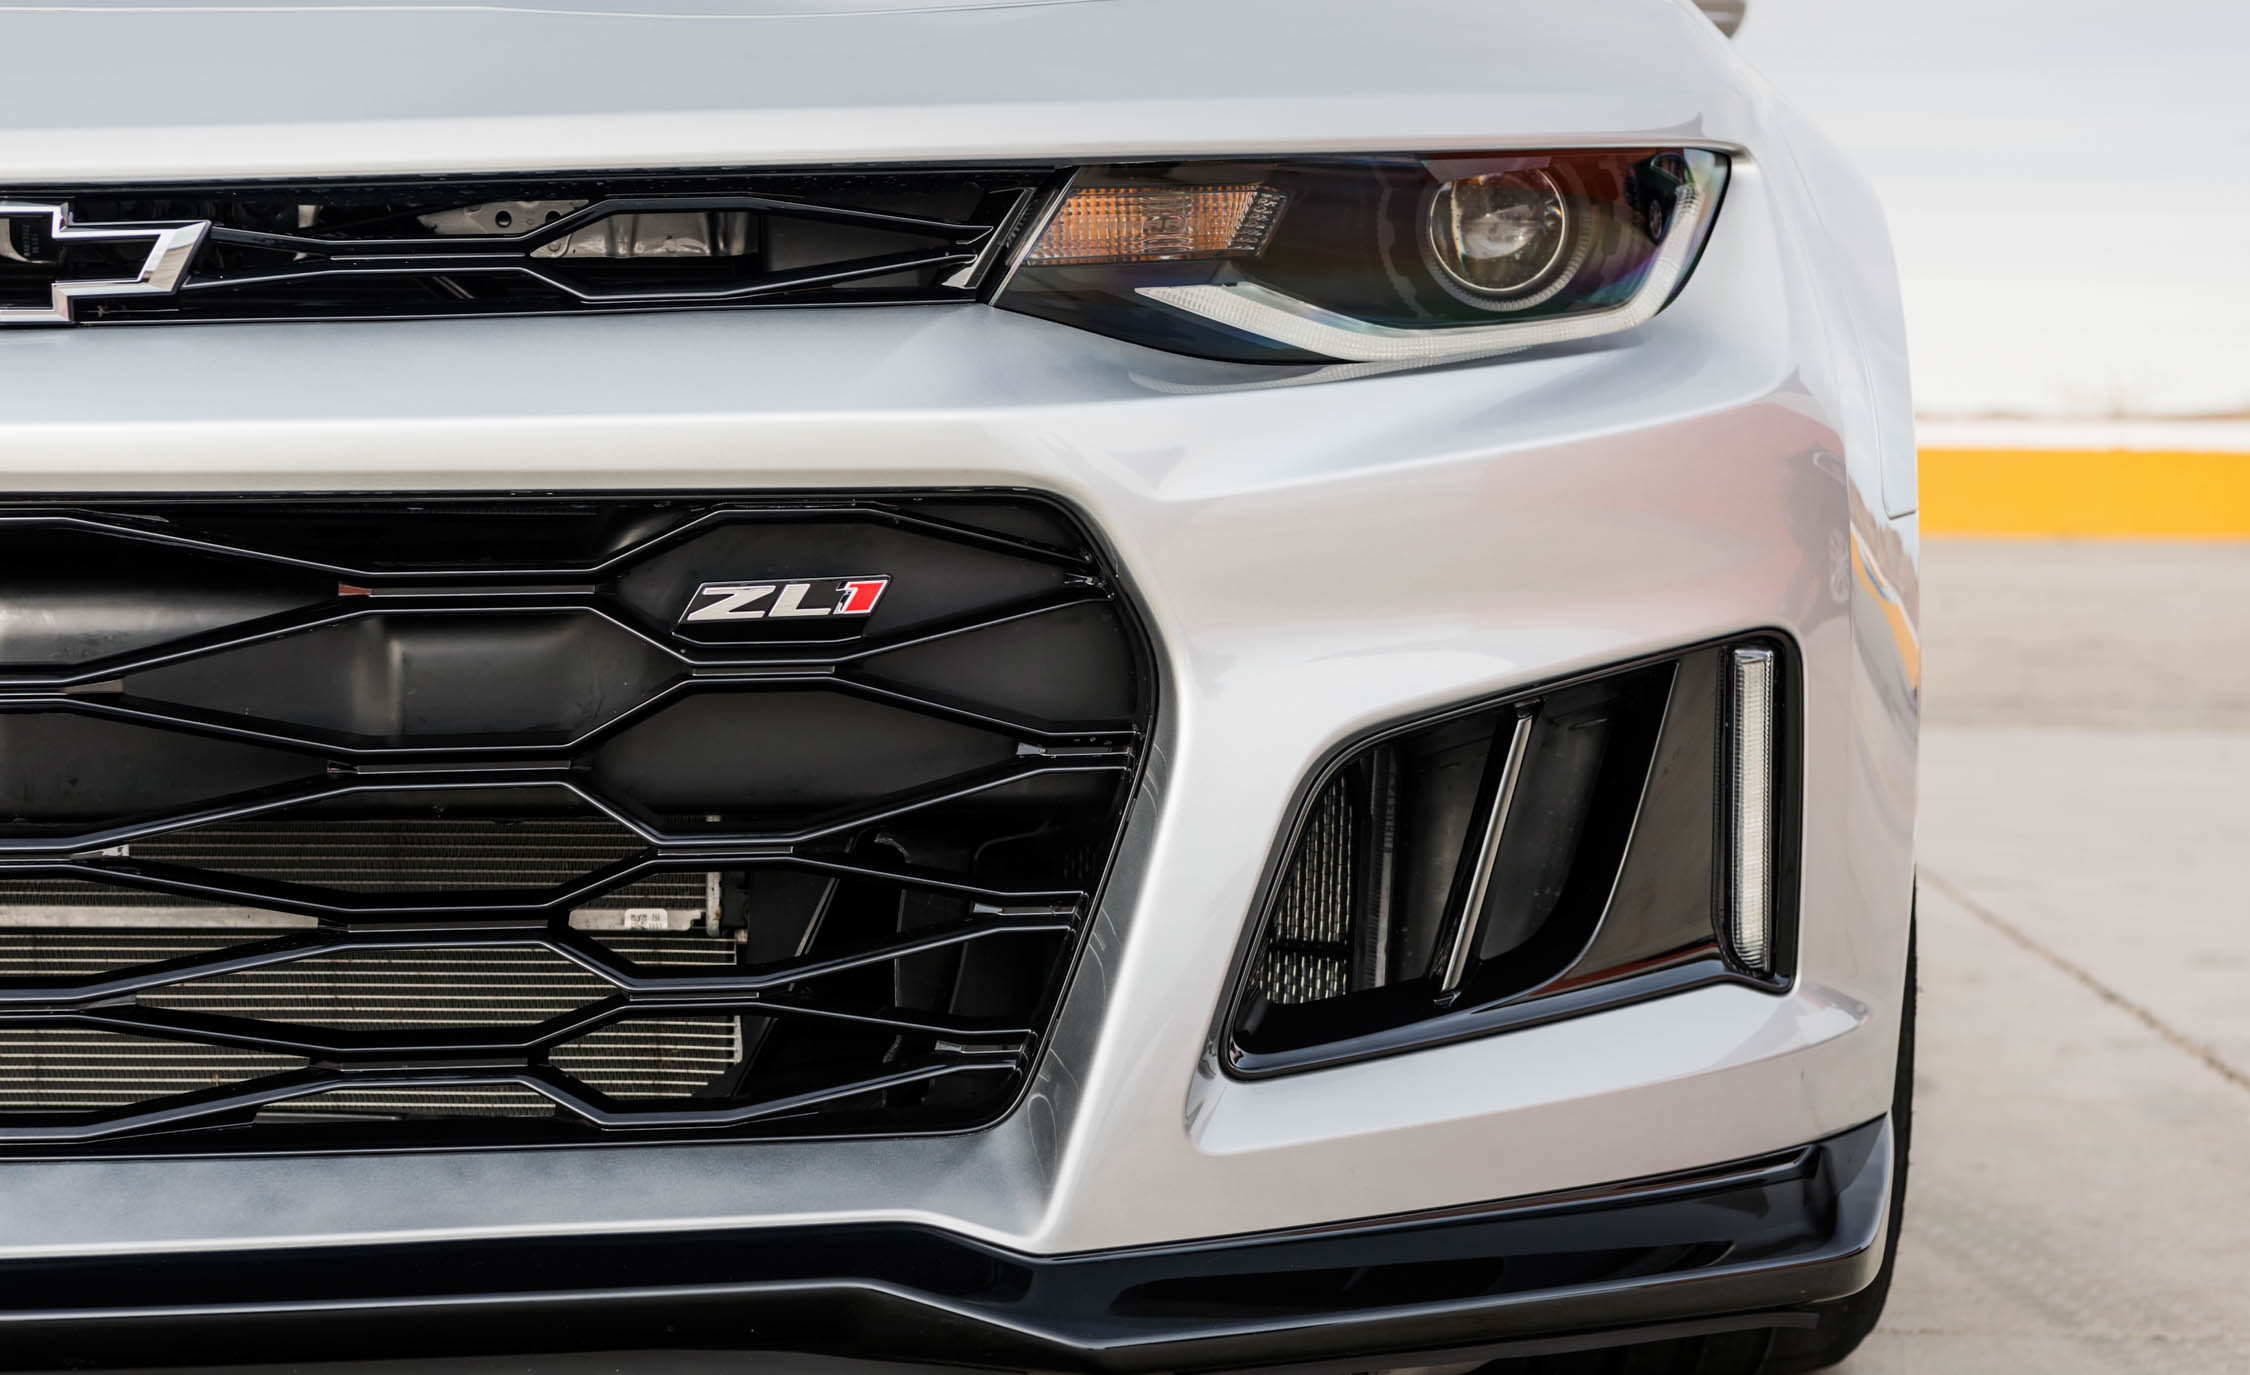 2017 Chevrolet Camaro ZL1 White Exterior View Grille And Bumper (Photo 49 of 62)